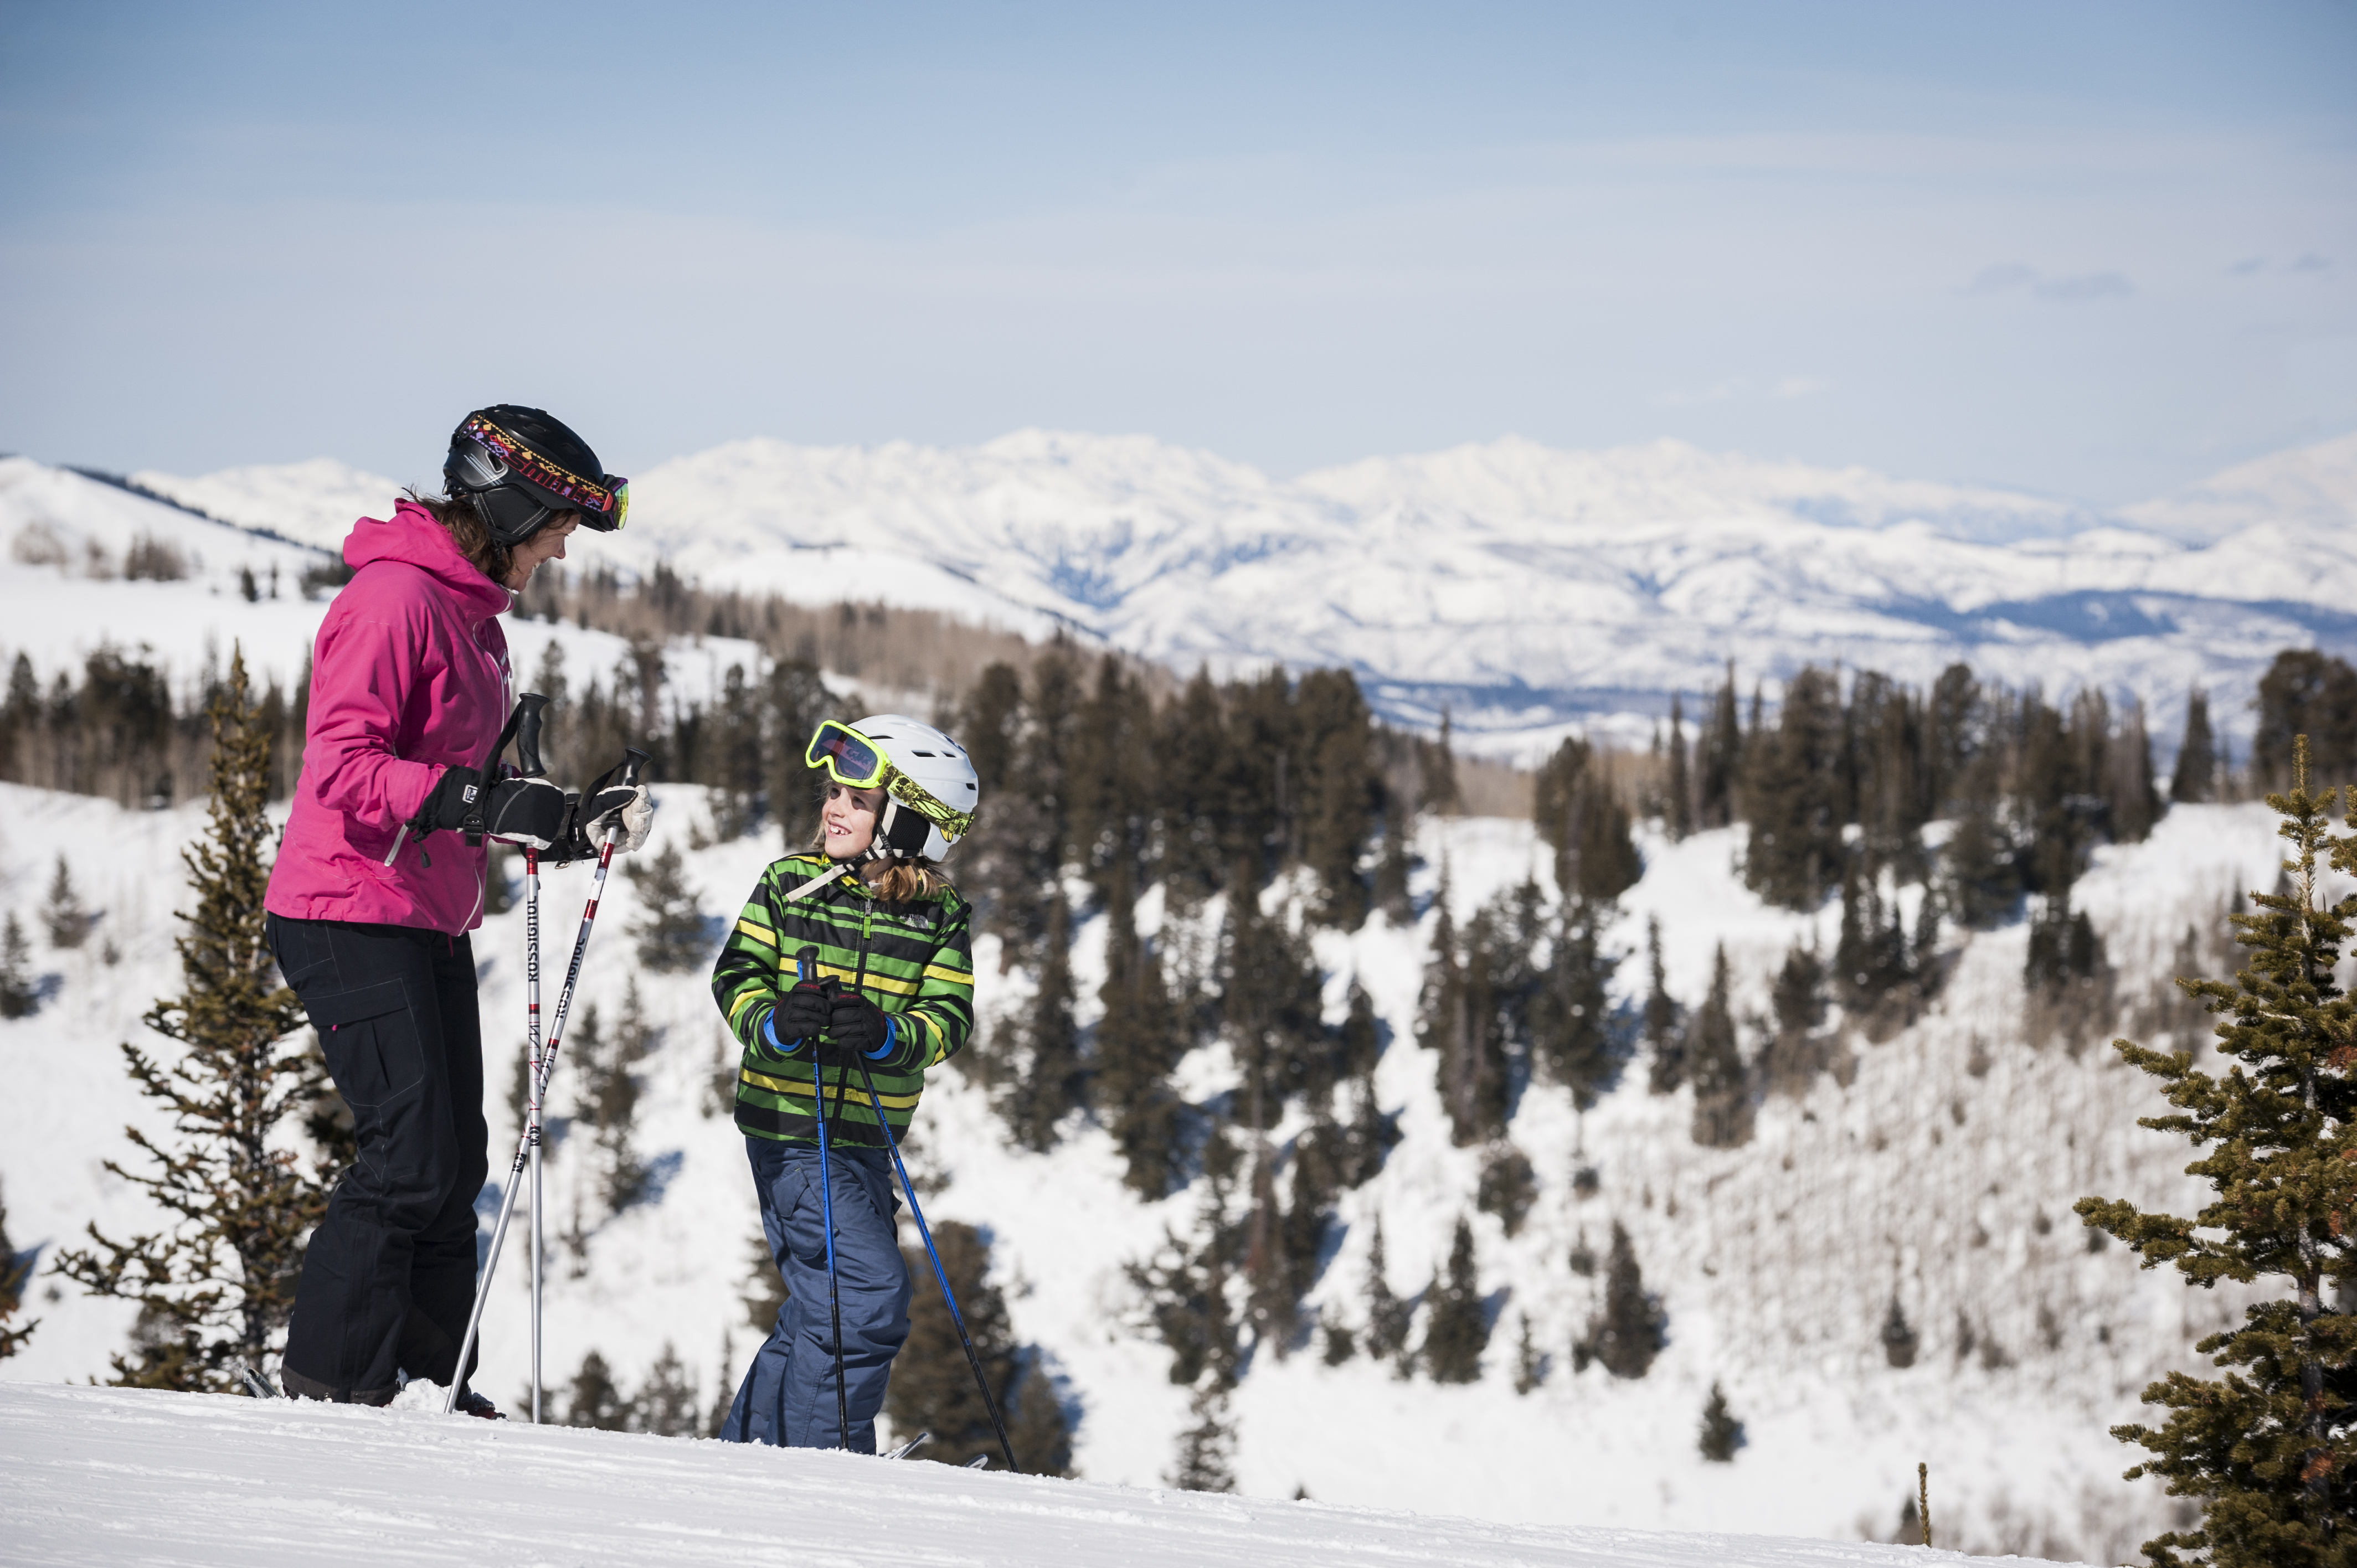 TOP THINGS TO DO IN PARK CITY